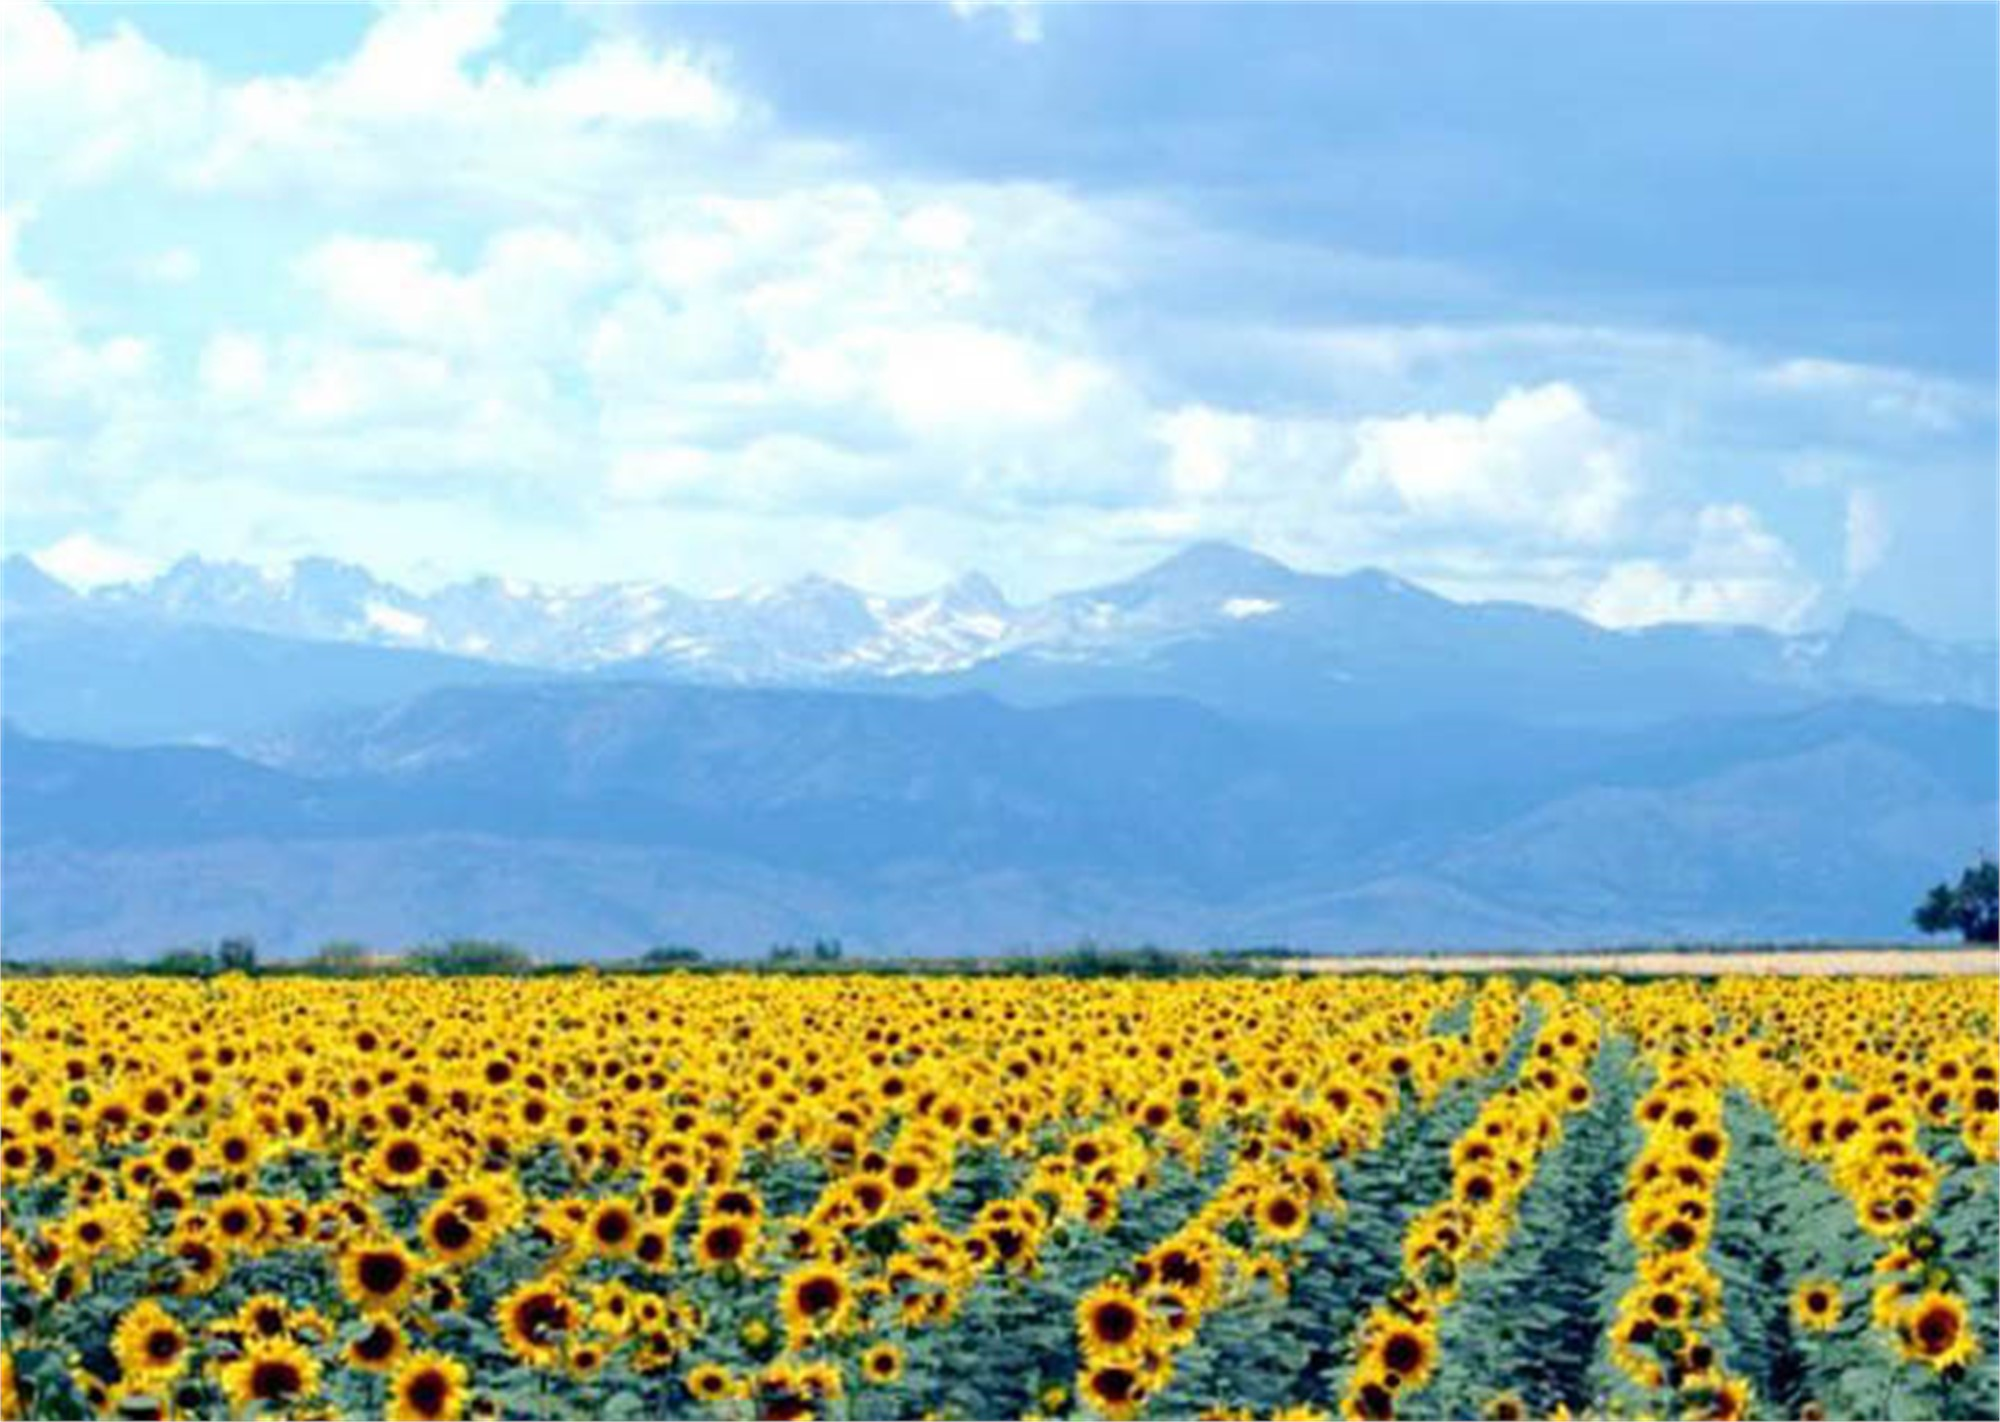 Sunflowers and Showers by Rob Pitzer